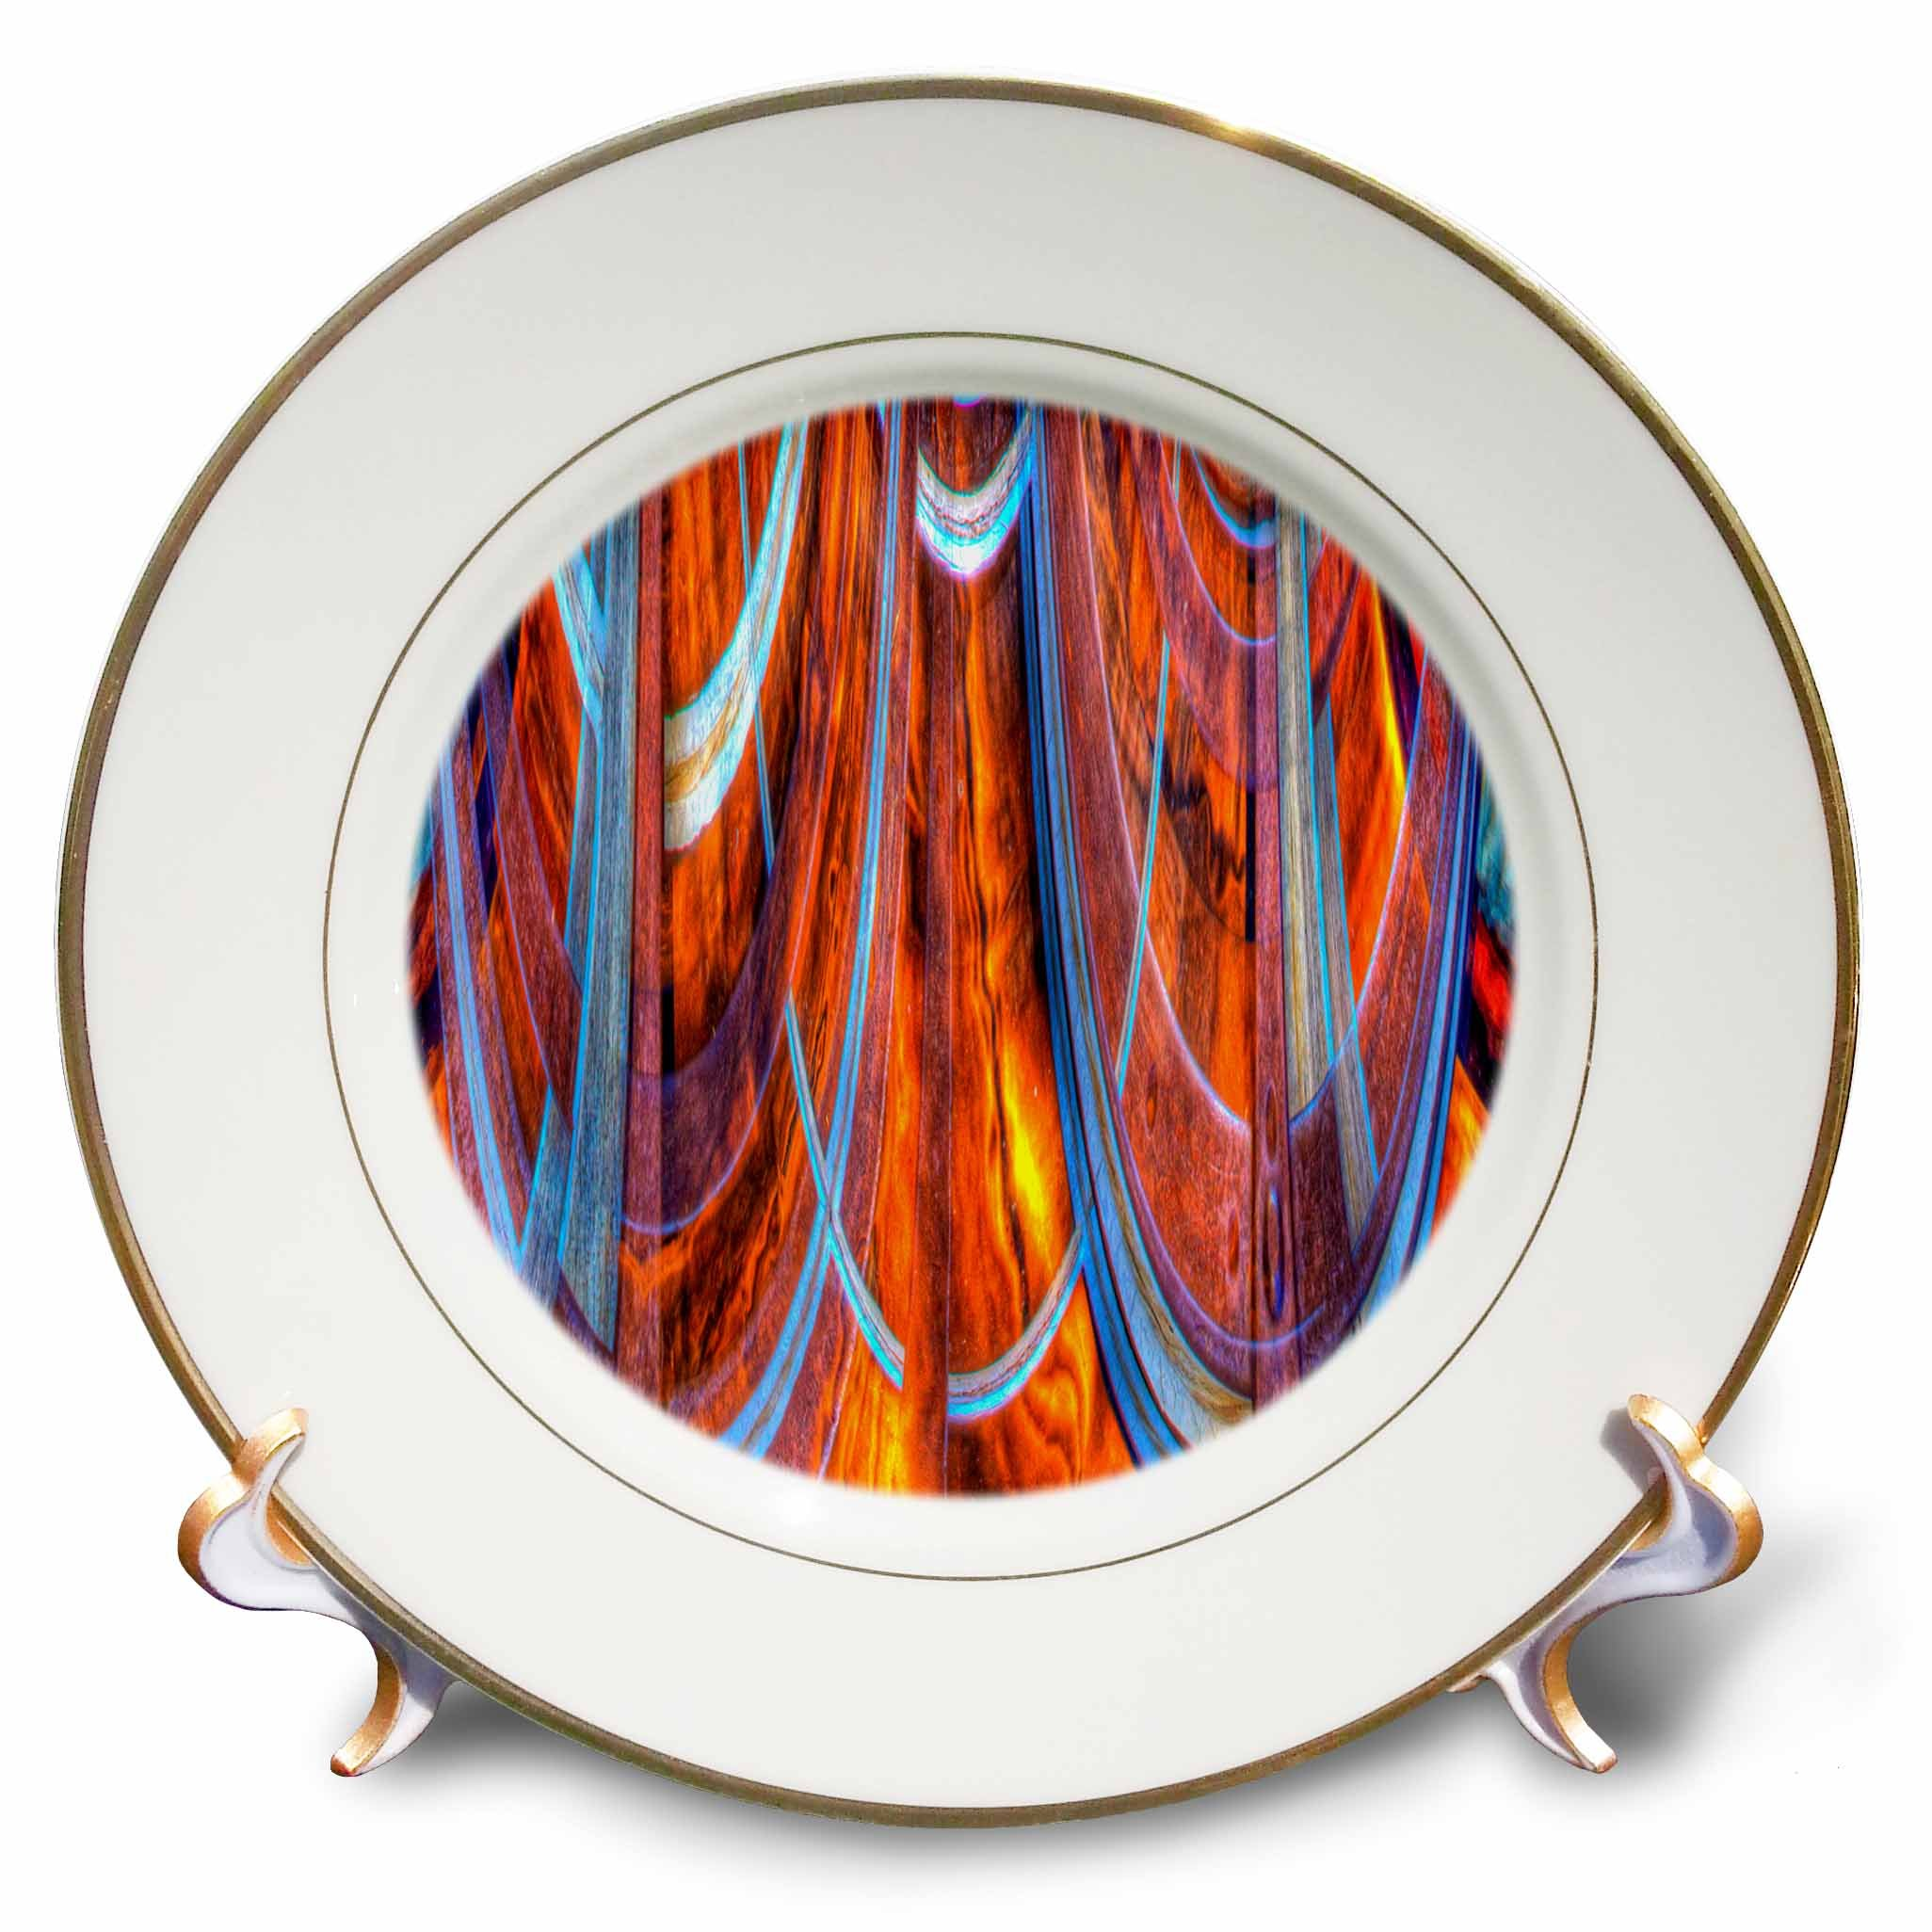 3dRose Danita Delimont - Abstracts - USA, California, Bodie State Park. Abstract of window. - 8 inch Porcelain Plate (cp_278533_1)